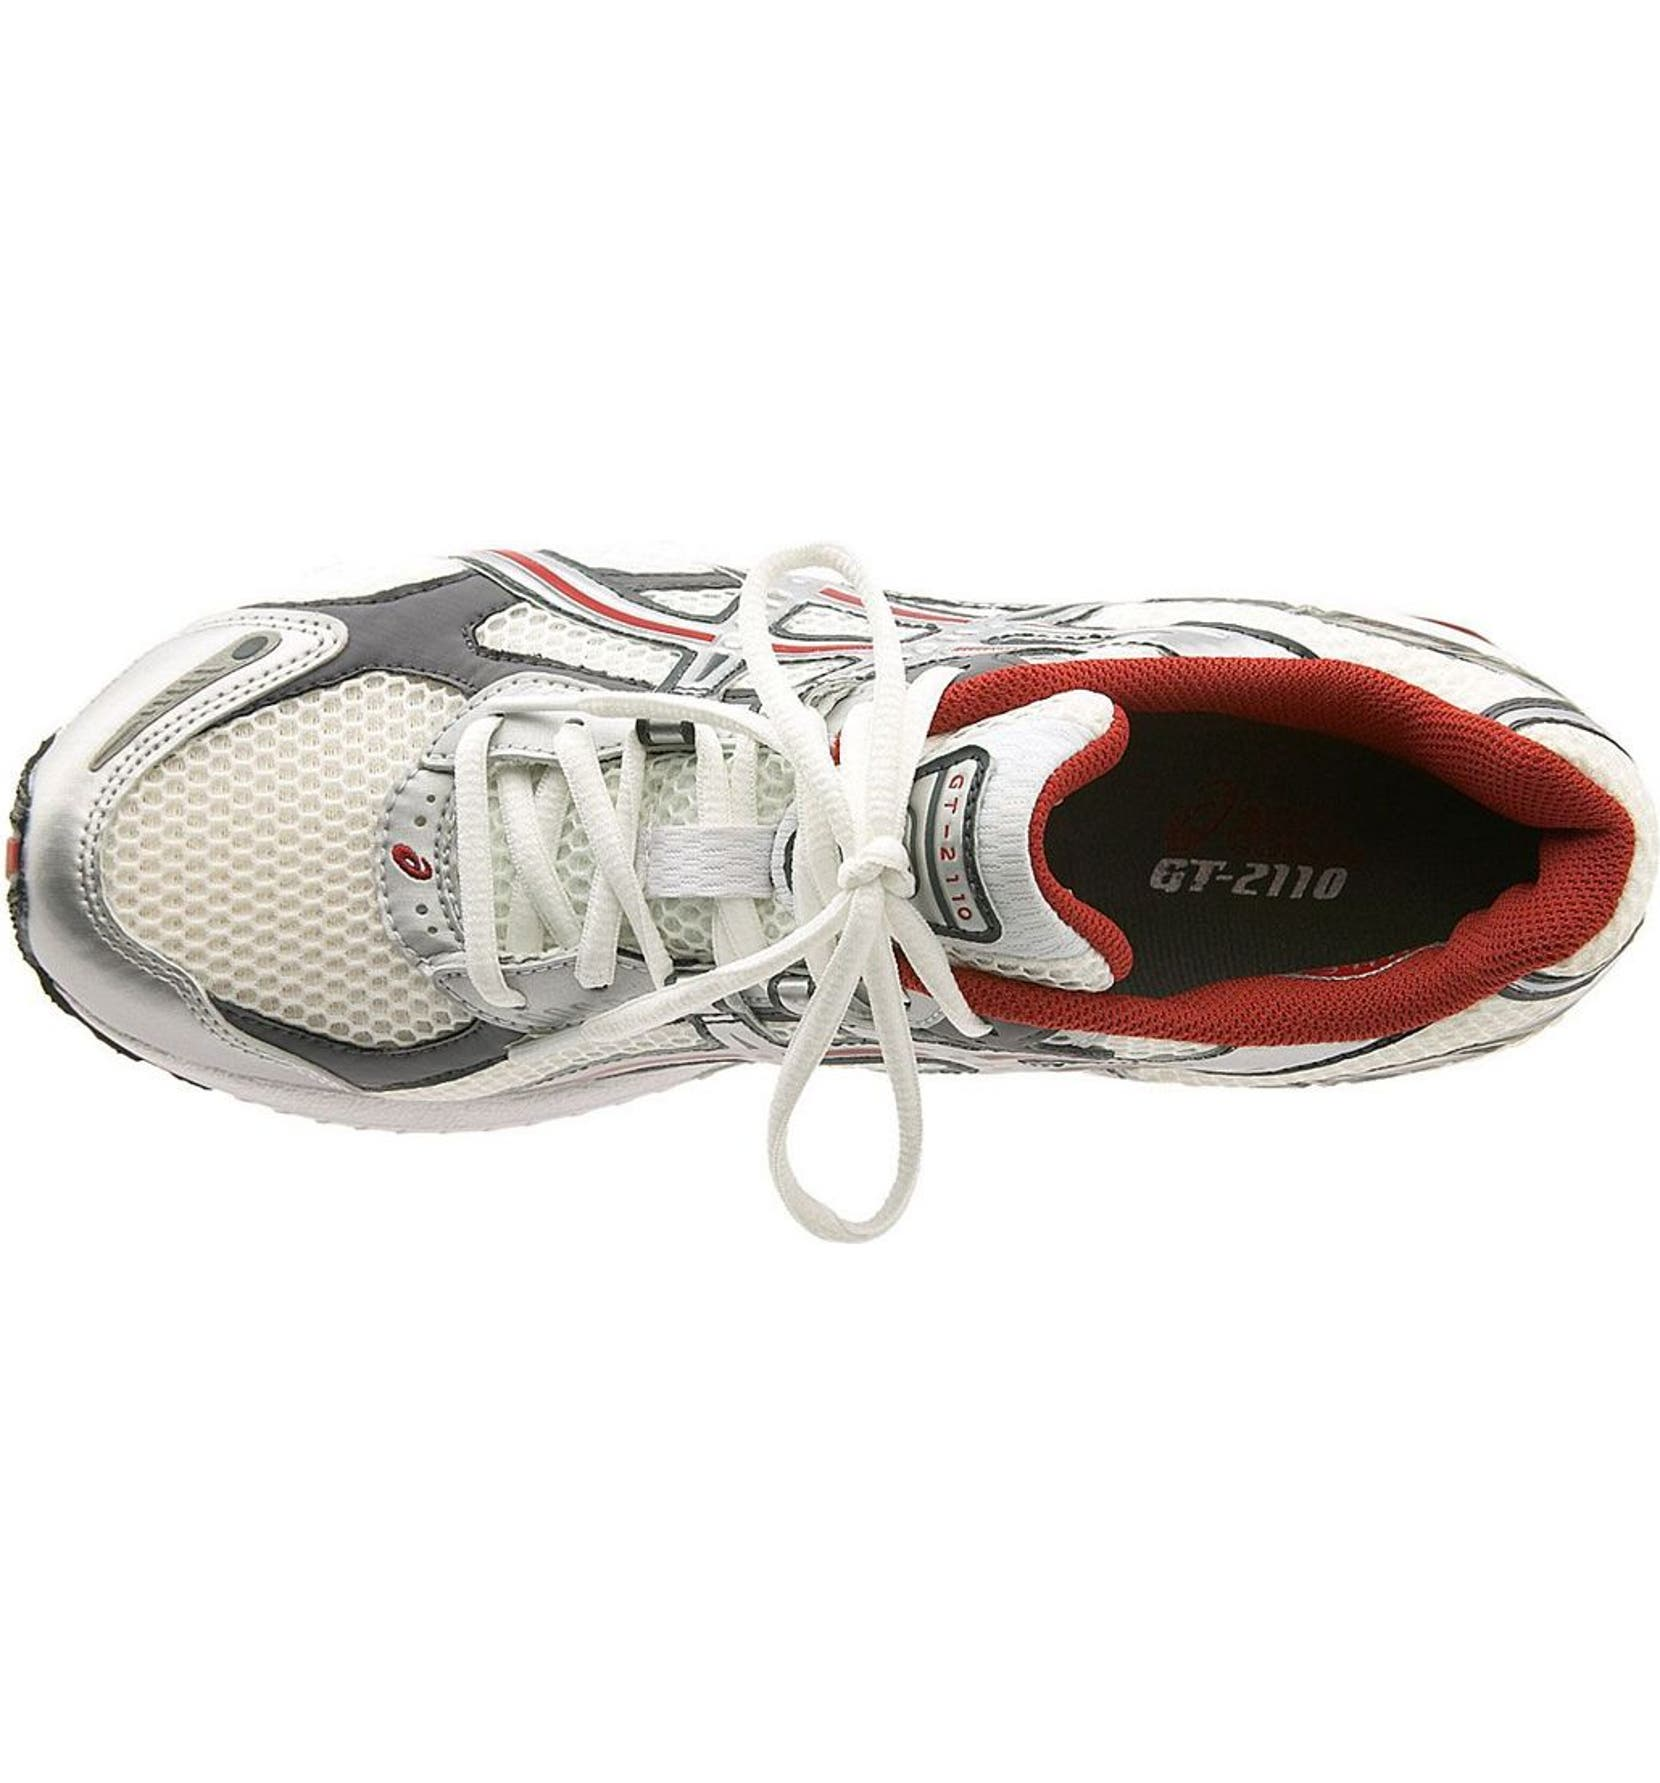 plus récent 03923 8cebc ASICS® 'GT-2110™' Running Shoe (Men) | Nordstrom